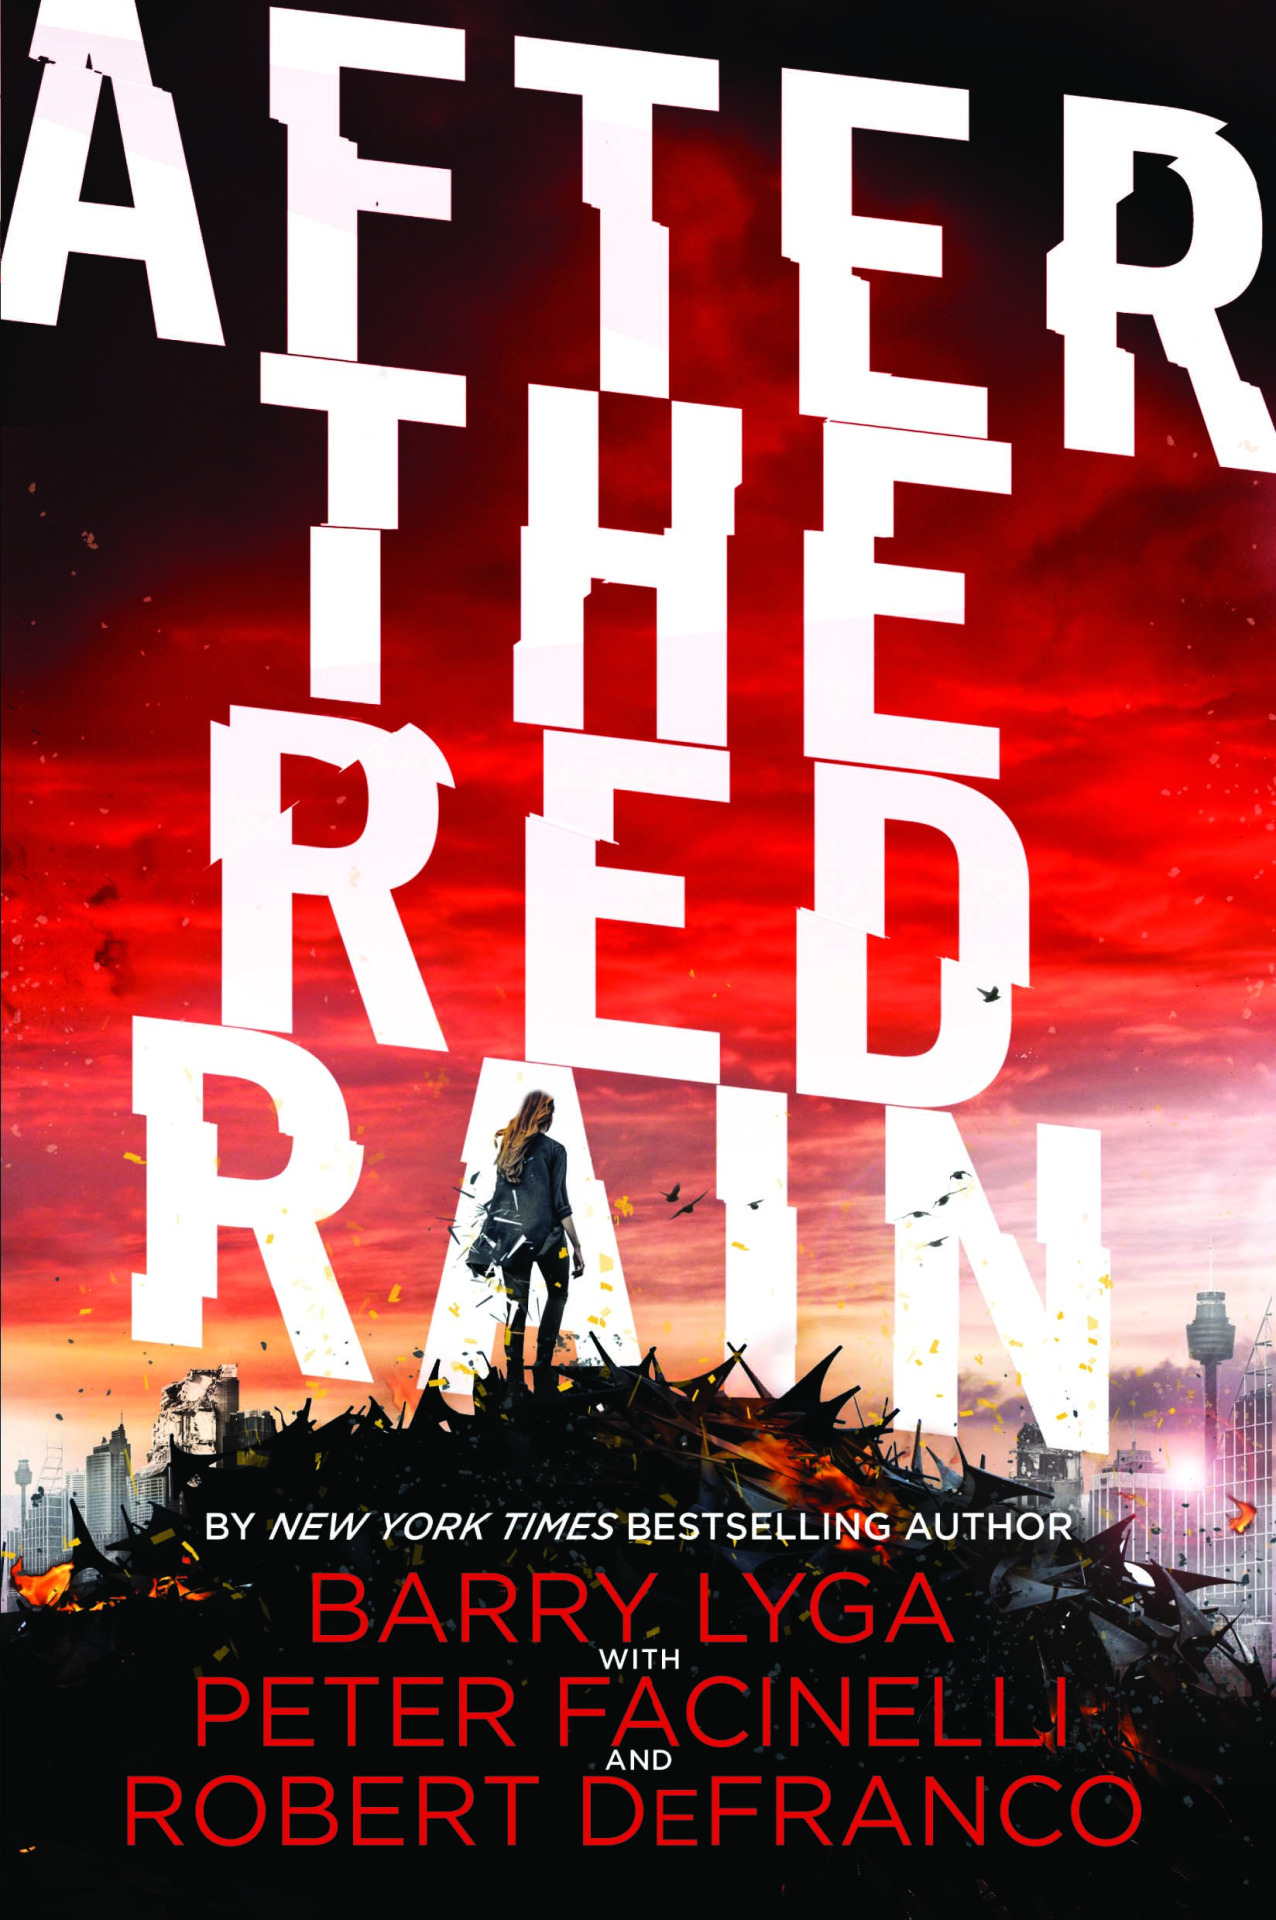 I co-authored the YA Novel After the Red Rain with Barry Lyga and Peter Facinelli being published by Little Brown August, 2015.   Read Entertainment Weekly's coverage:    http://www.ew.com/article/2013/10/23/twilight-peter-facinelli-after-the-red-rain-young-adult-author   Amazon (pre-order, Avail August 2015):    http://www.amazon.com/After-Red-Rain-Barry-Lyga/dp/0316406031